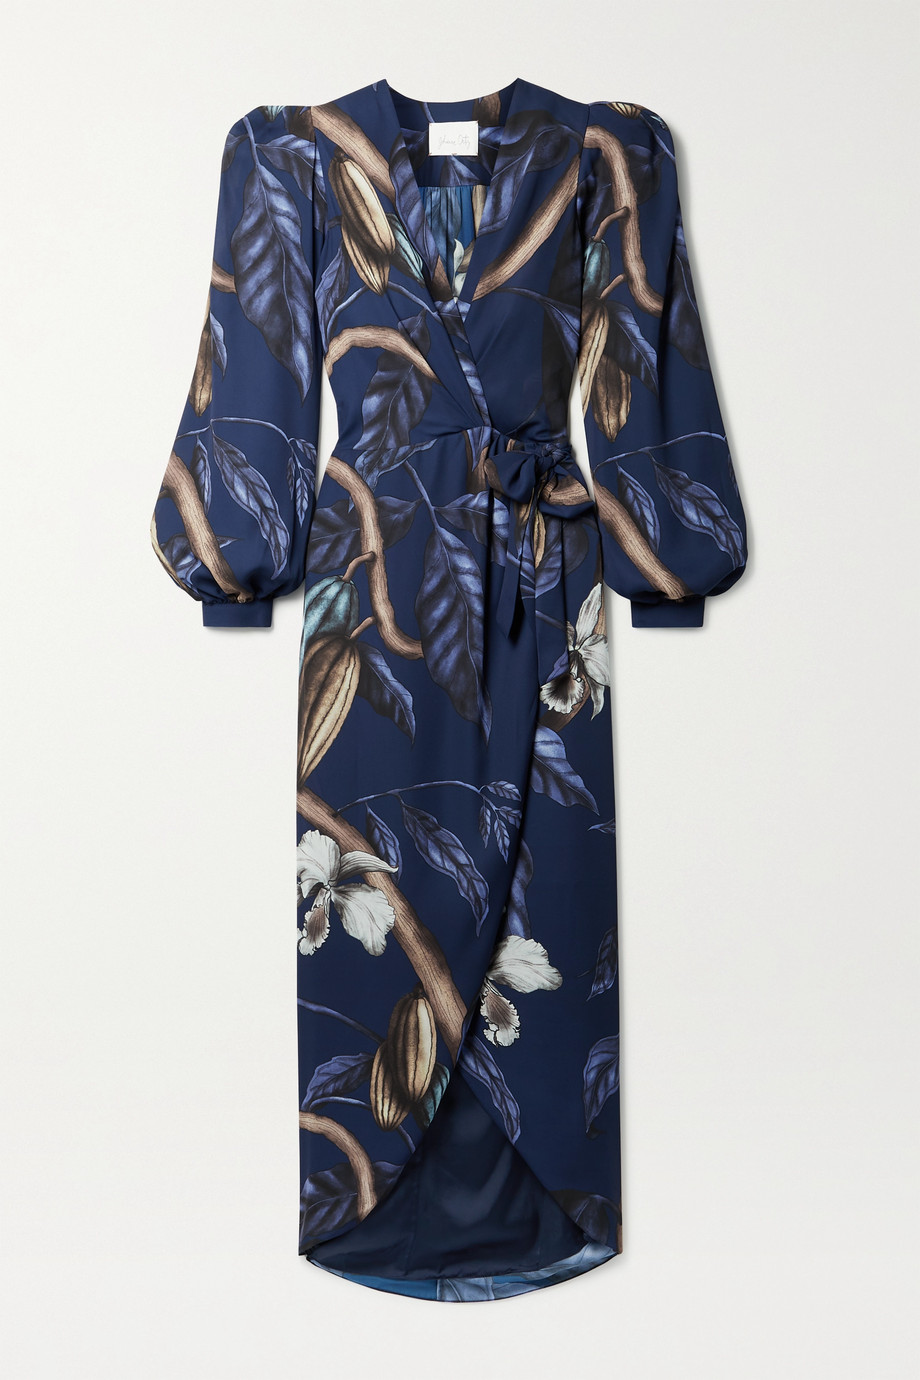 JOHANNA ORTIZ + NET SUSTAIN Reino Vegetal printed recycled satin wrap midi dress